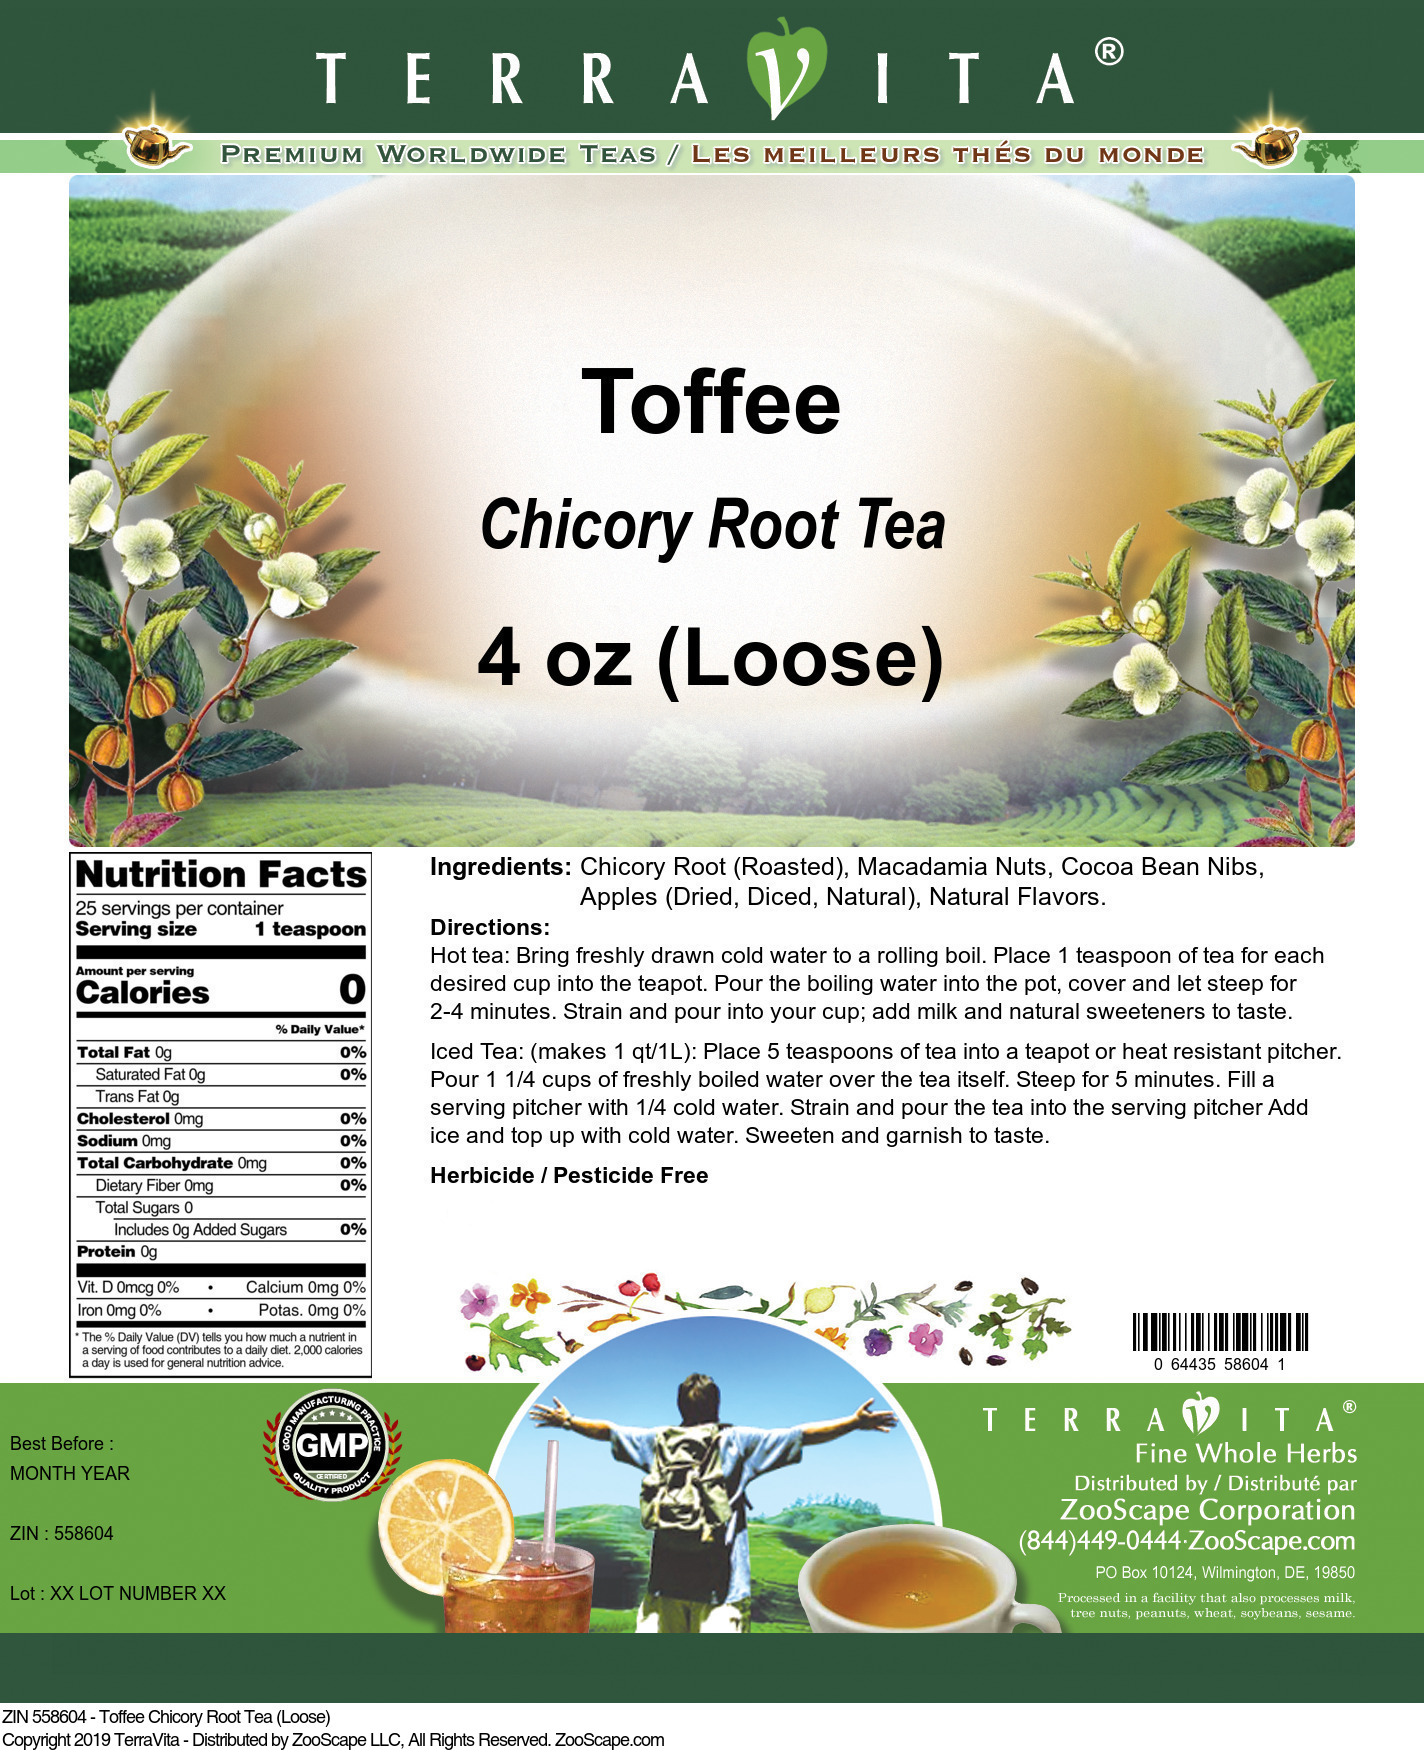 Toffee Chicory Root Tea (Loose)